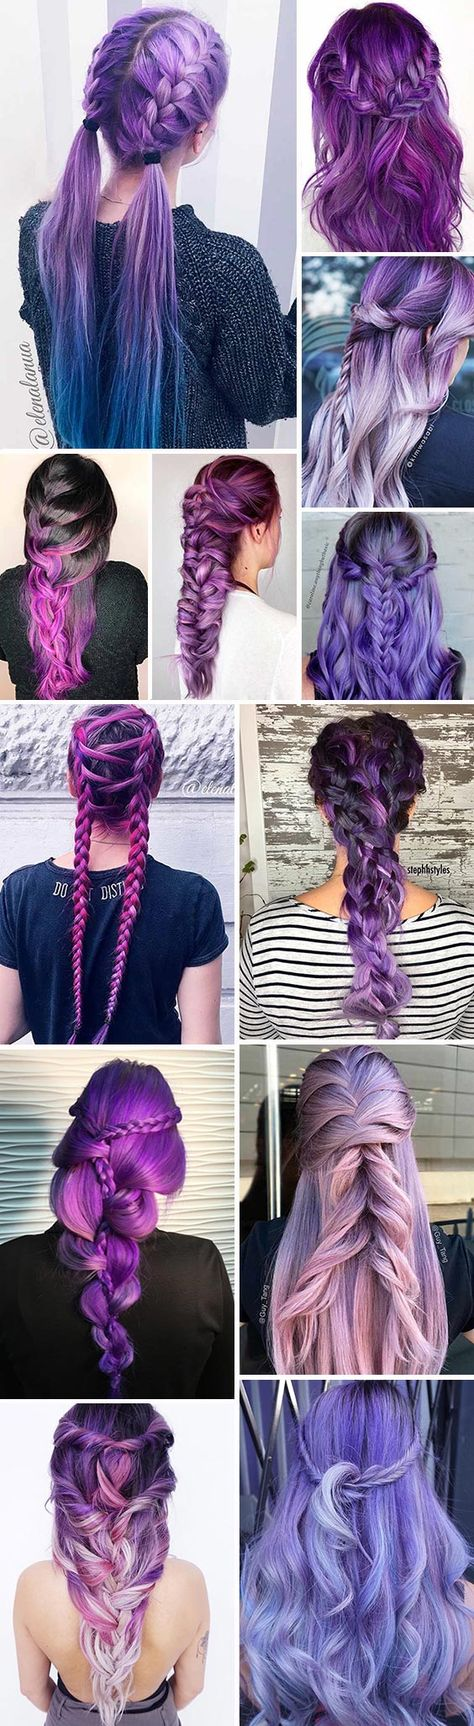 Purple hair is now a huge trend among chic fashionistas and